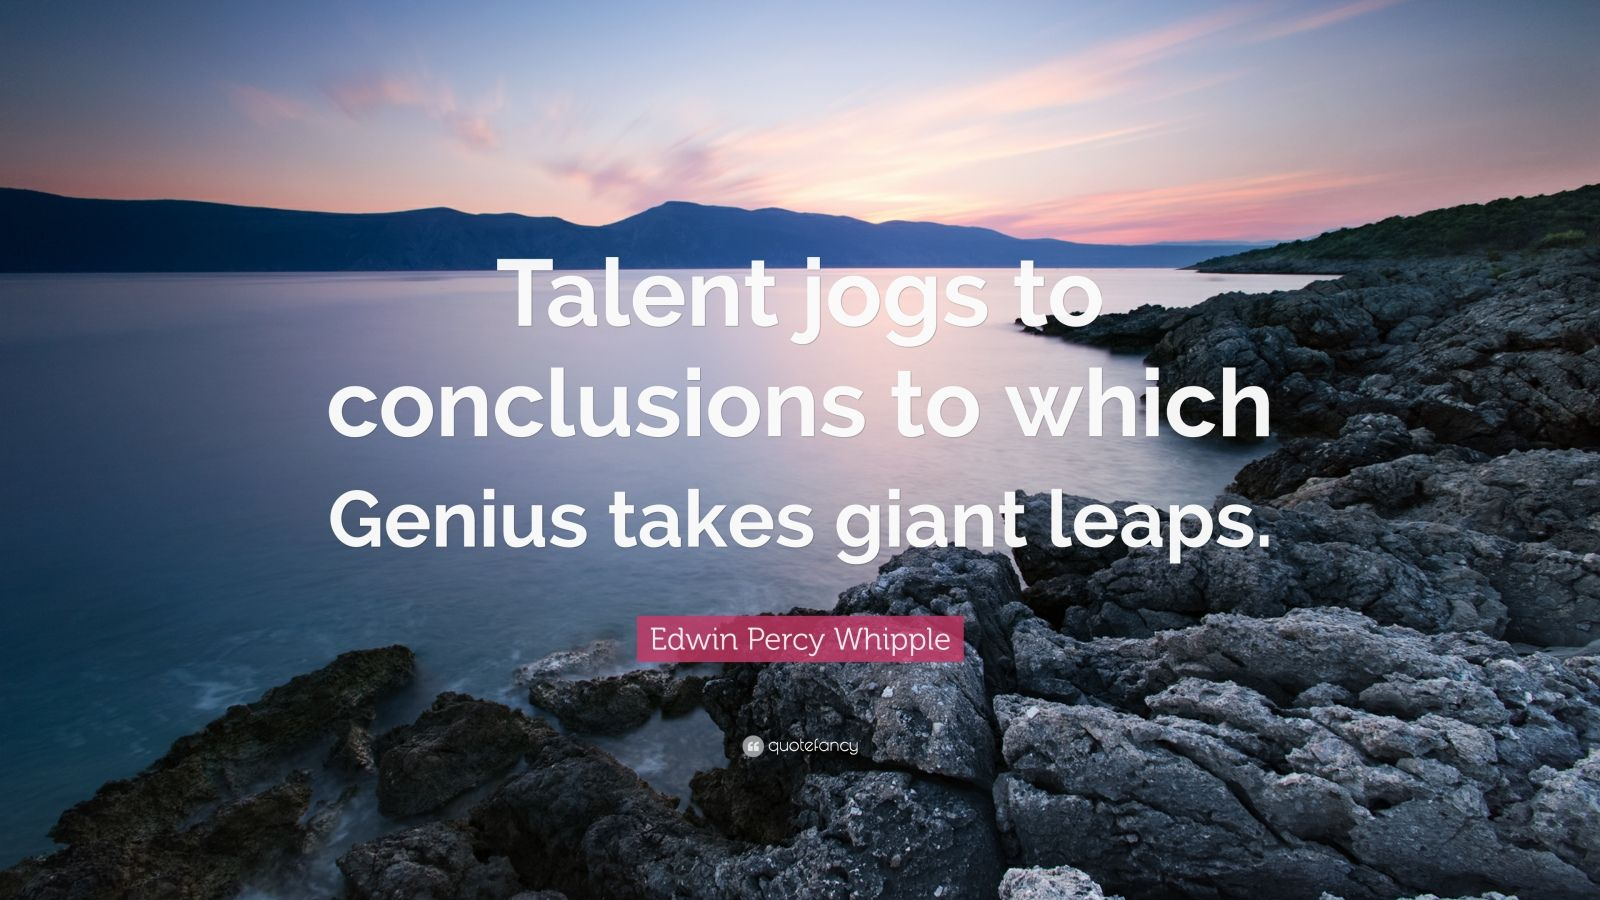 """Edwin Percy Whipple Quote: """"Talent jogs to conclusions to which Genius takes giant leaps."""""""